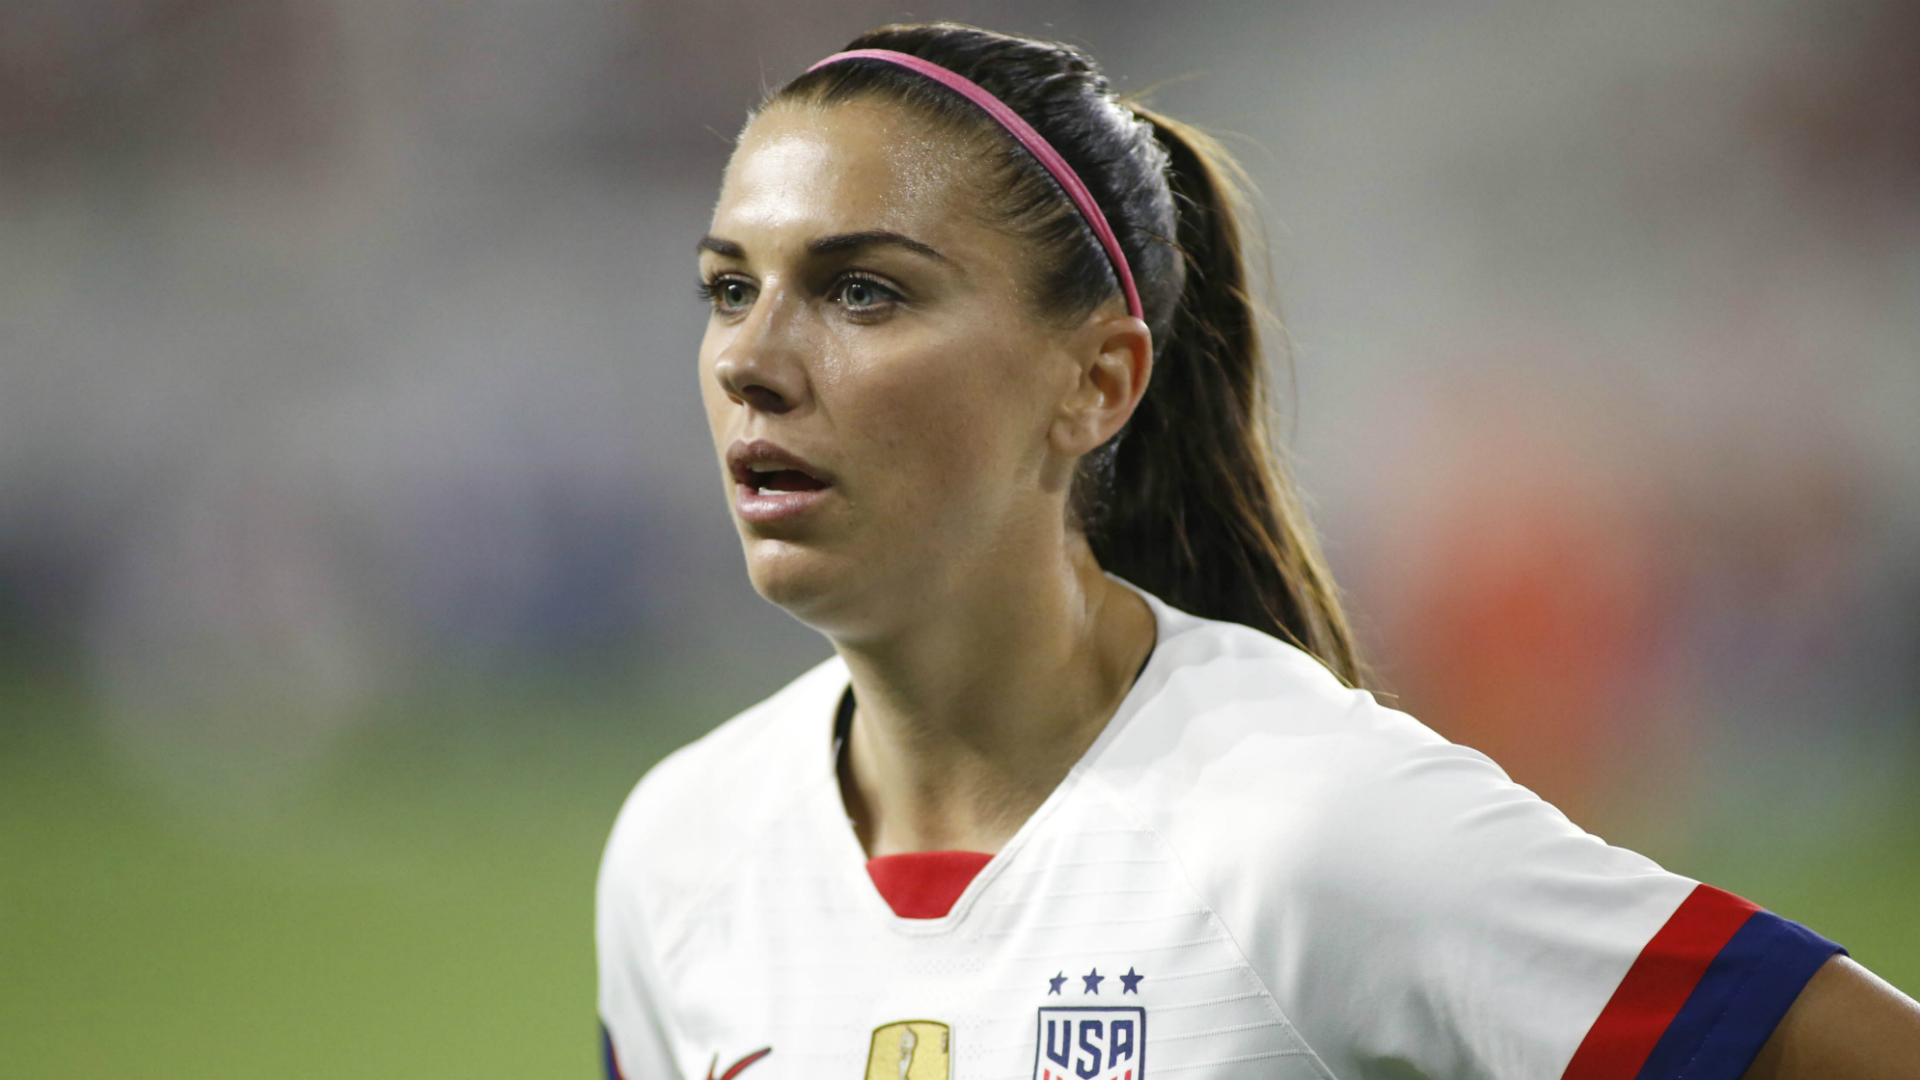 Women's World Cup: Who are the top 10 players to watch?